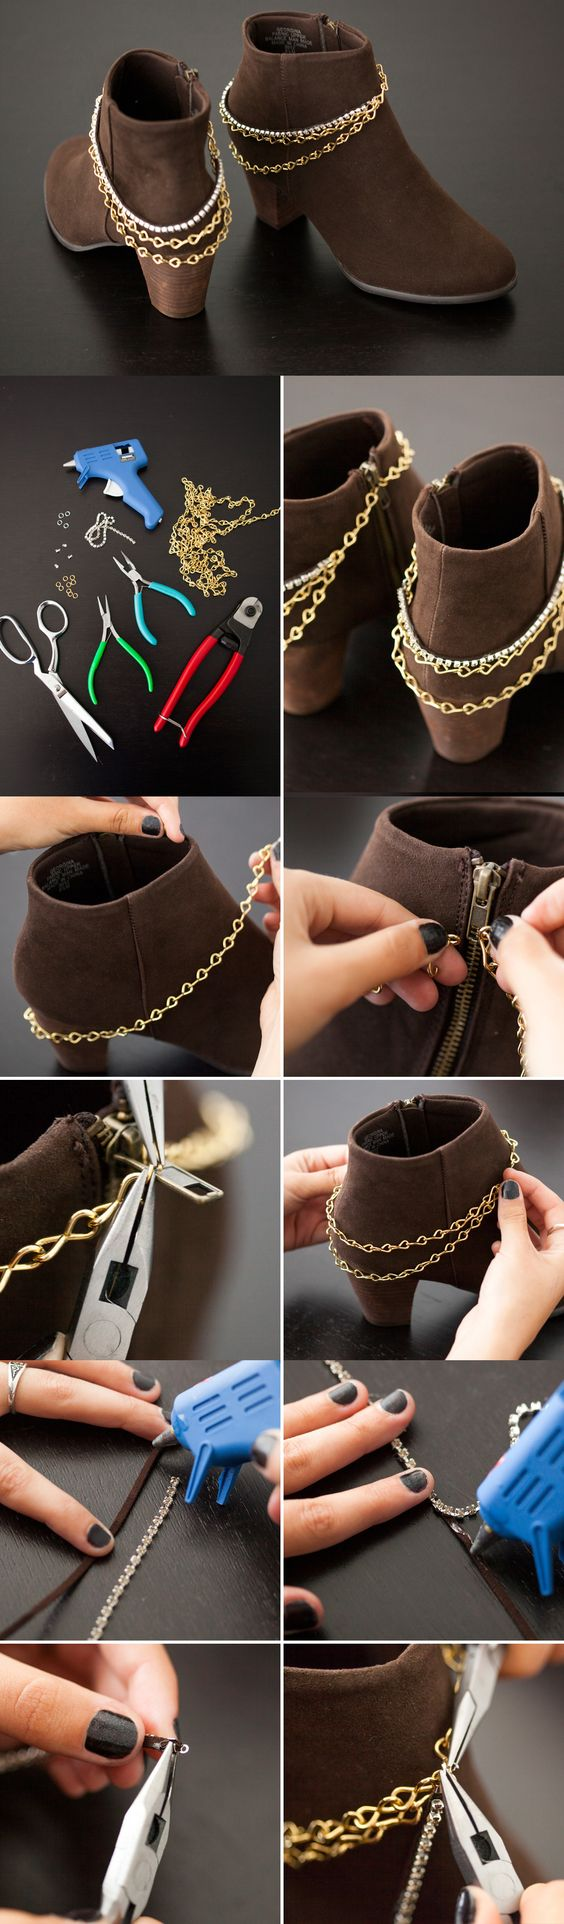 Best DIY Booties Ideas You Need to Try: